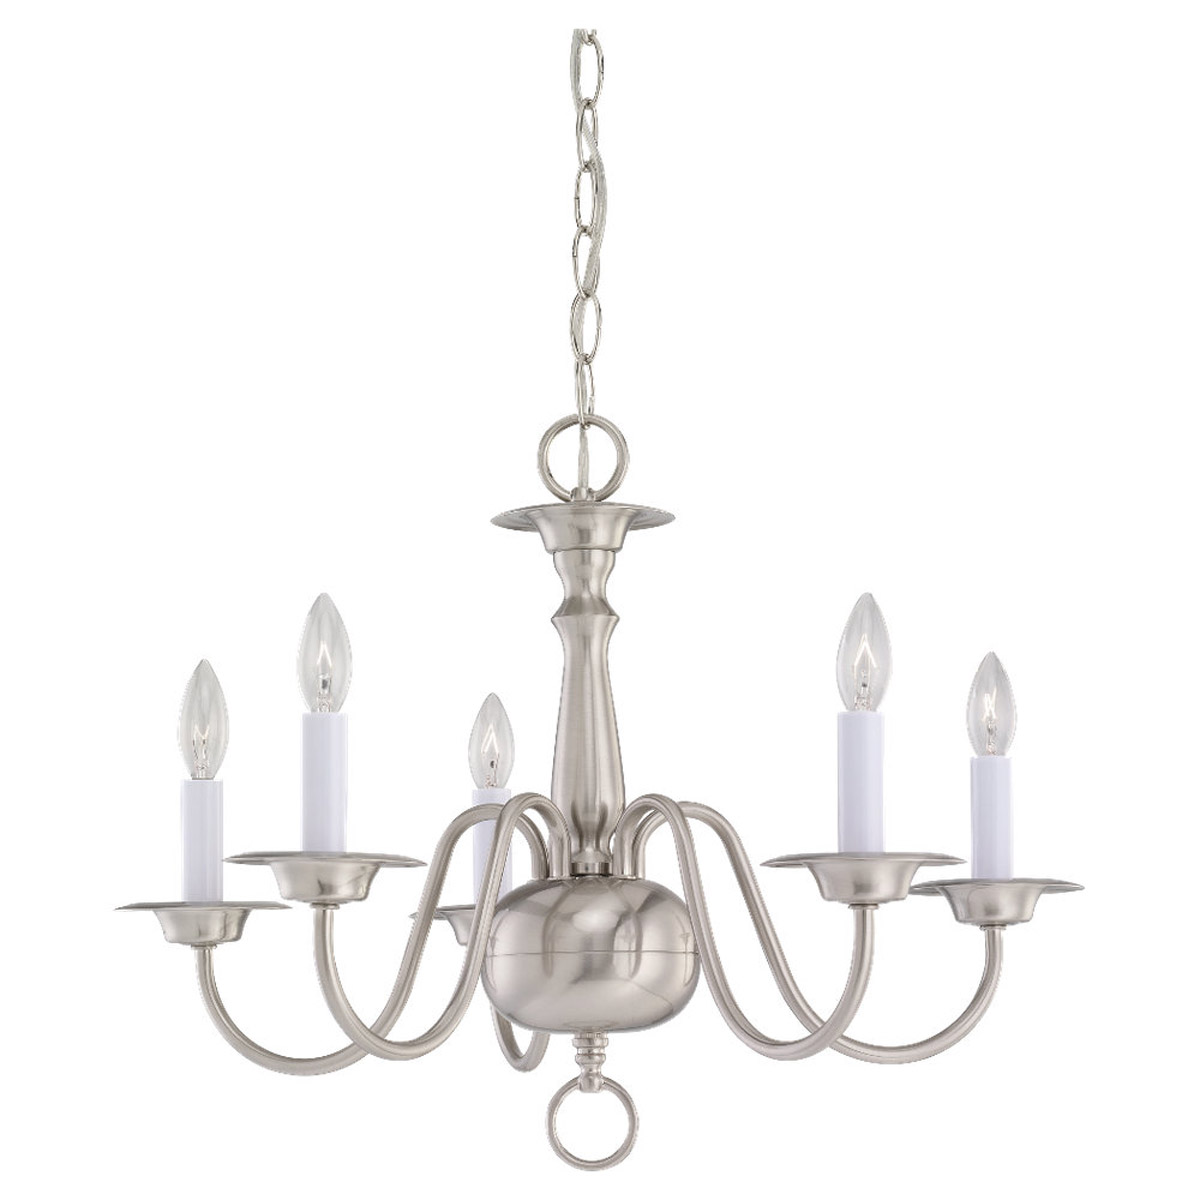 Sea Gull Lighting Traditional 5 Light Chandelier in Brushed Nickel 3313-962 photo